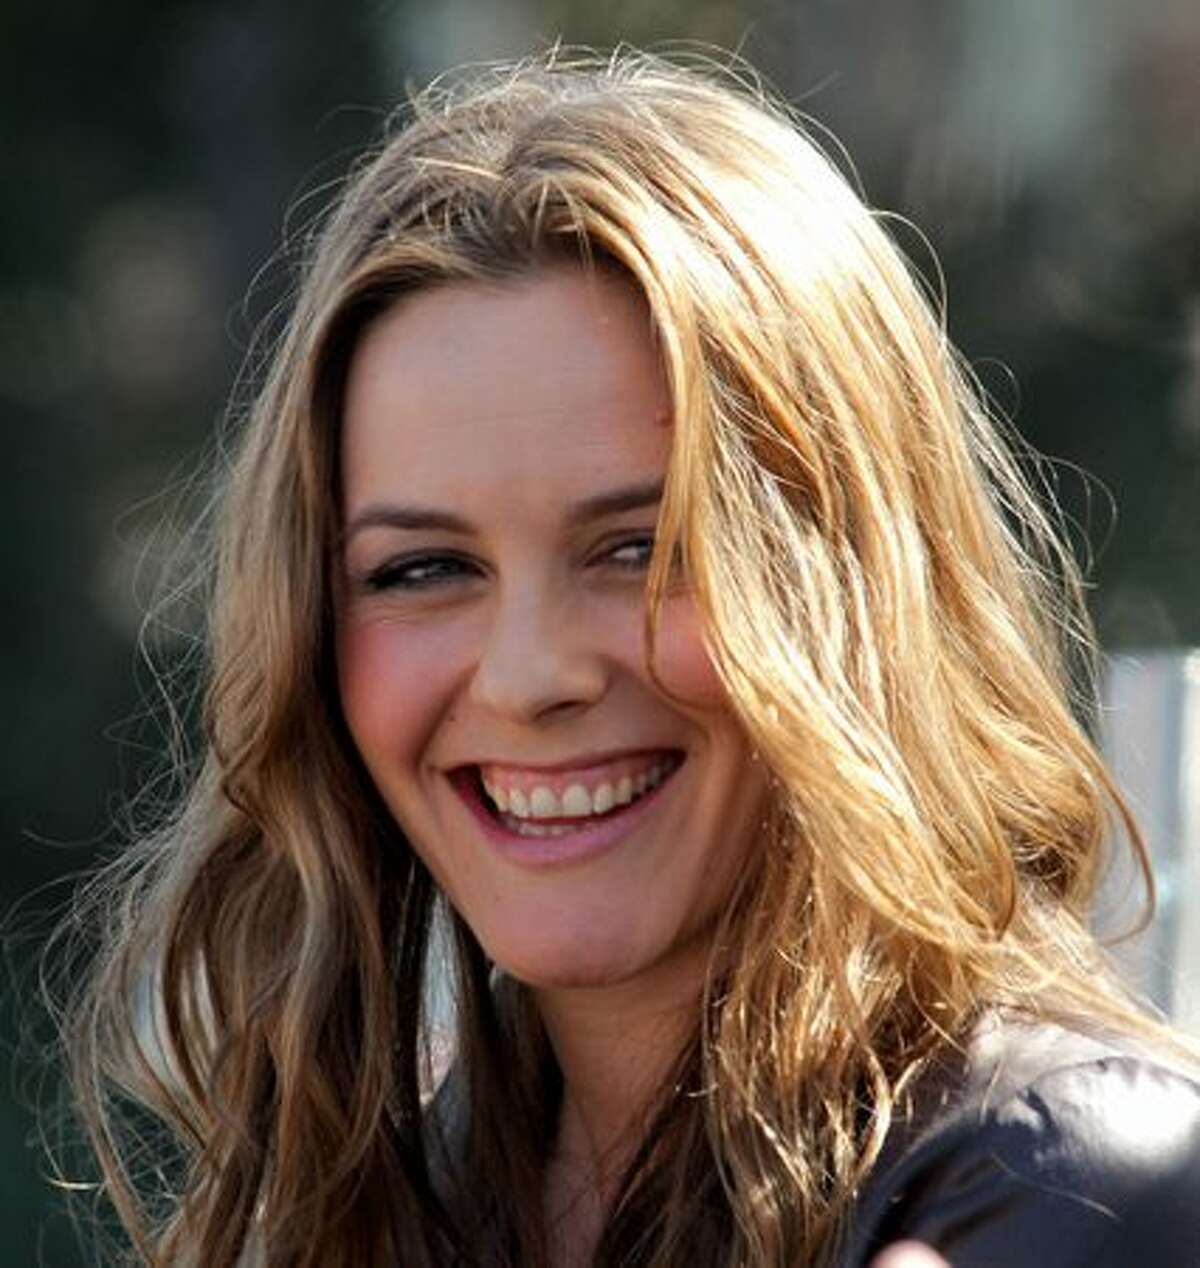 Actress/author Alicia Silverstone speaks during the 15th annual Los Angeles Times Festival of Books at UCLA on Saturday in Los Angeles, California.